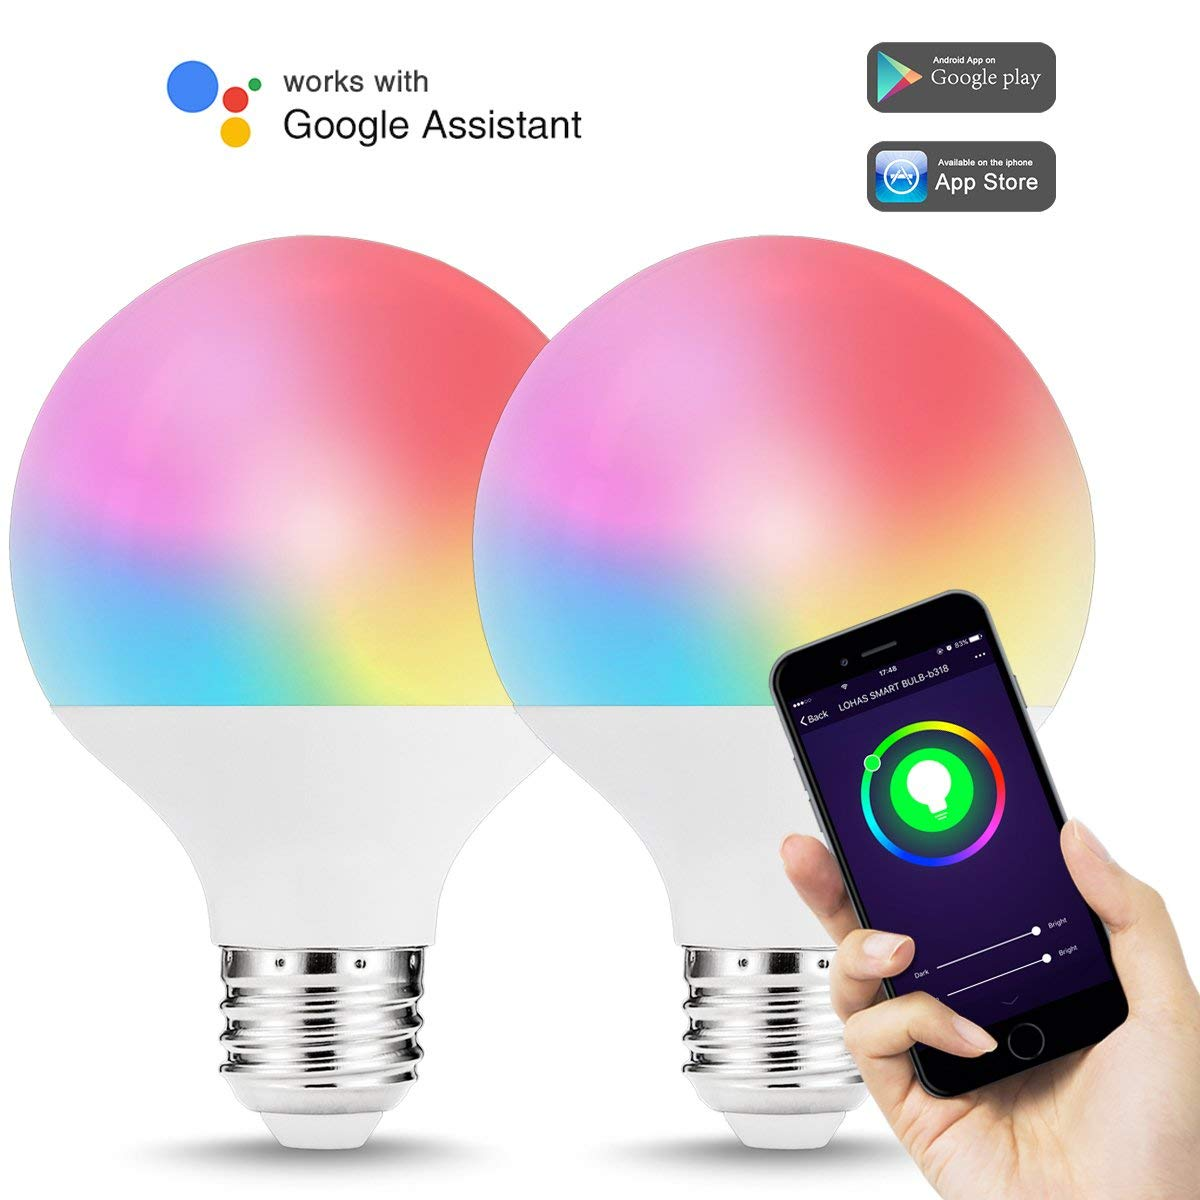 WIFI Smart LED Bulb Light G25 9W E26 Base 810LM Multicolor Changing Daylight 5000K Compatible with